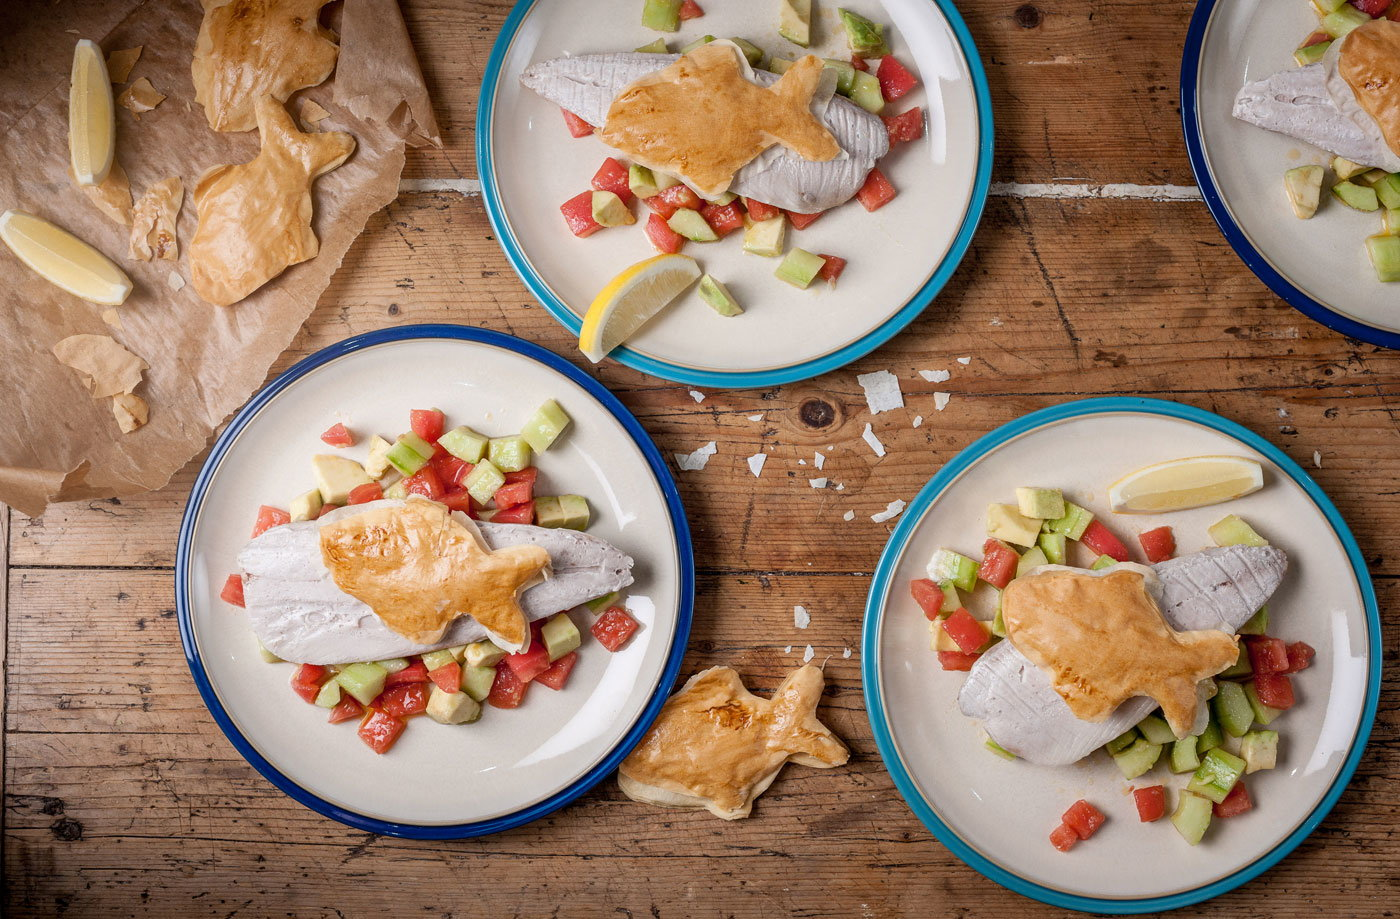 William Drabble's baked mackerel with salsa and fishy crisps recipe